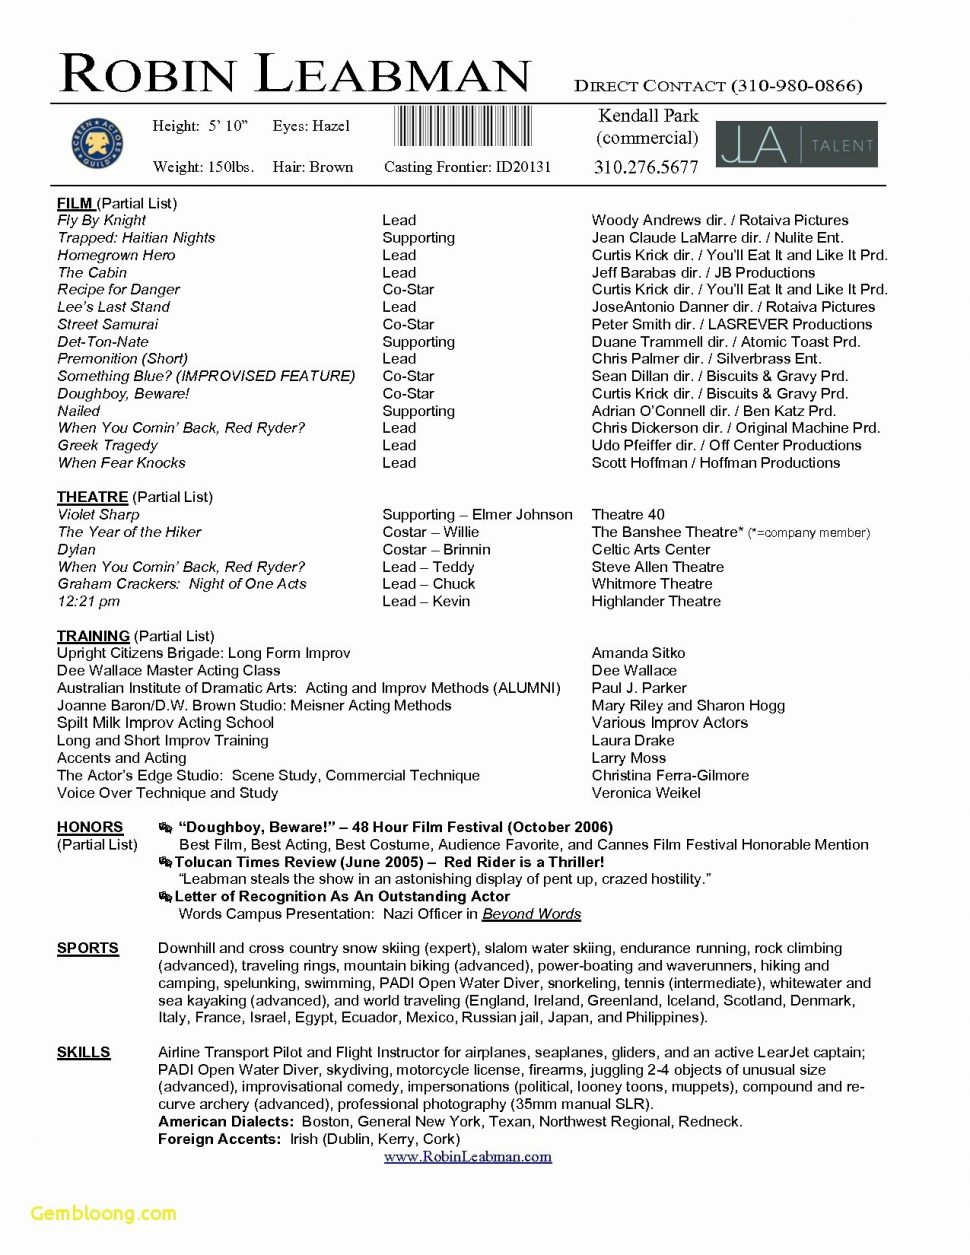 Acting Resume Template Download - Resume Functional Resume Builder Template Jobresume Website